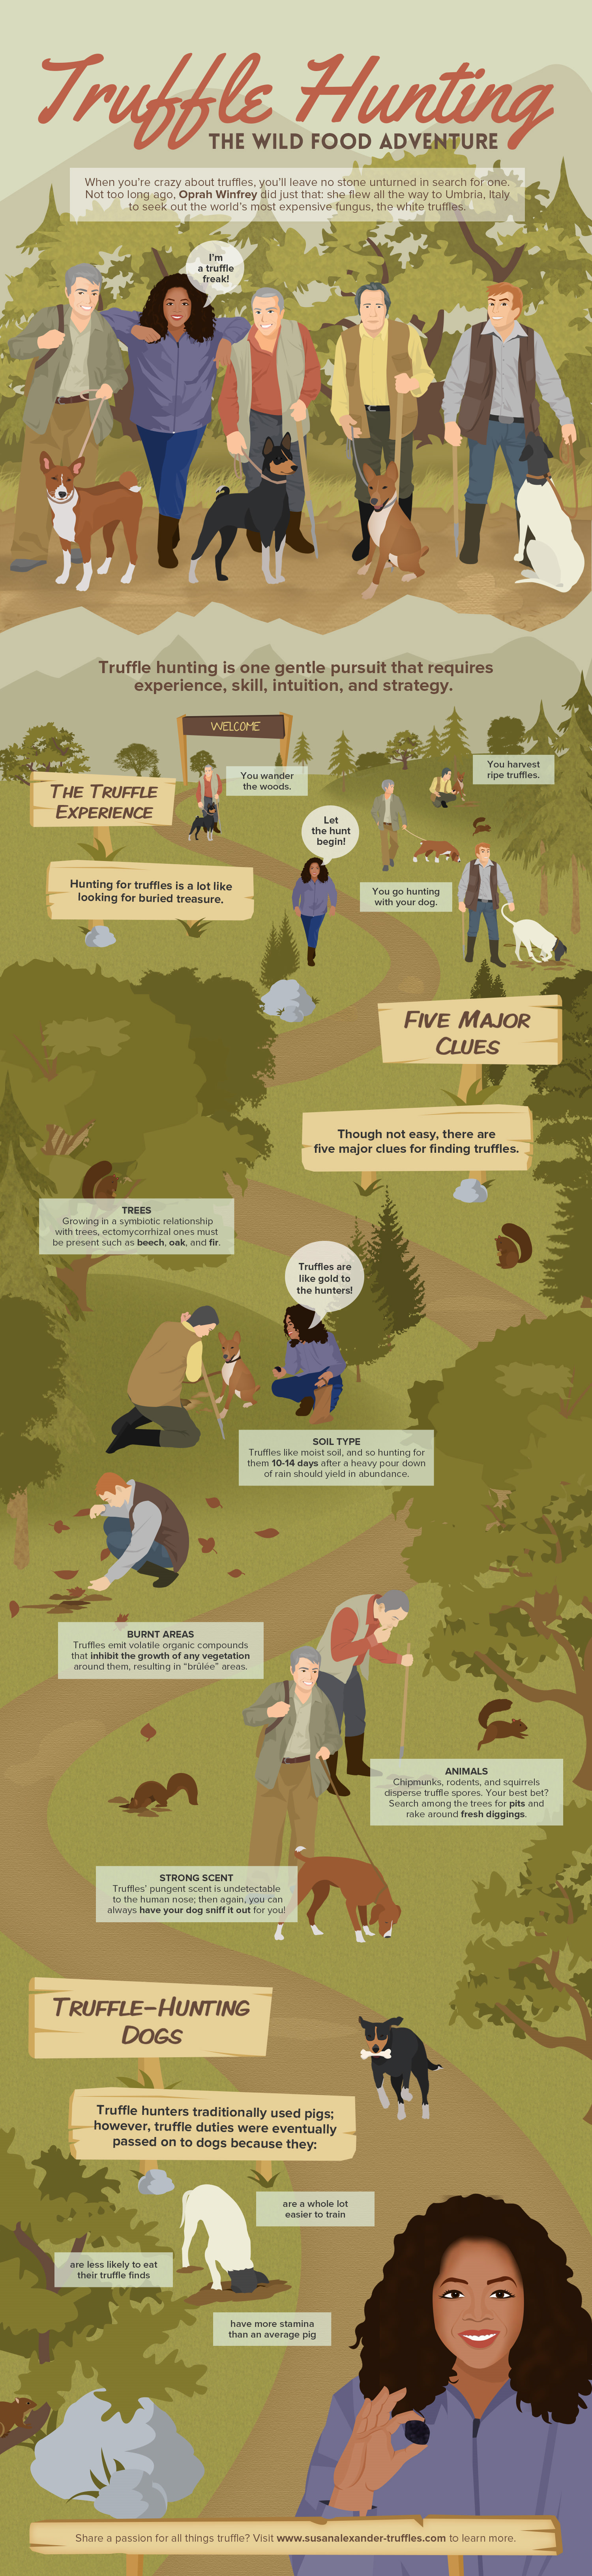 Truffle Hunting - The Wild Food Adventure Infographic